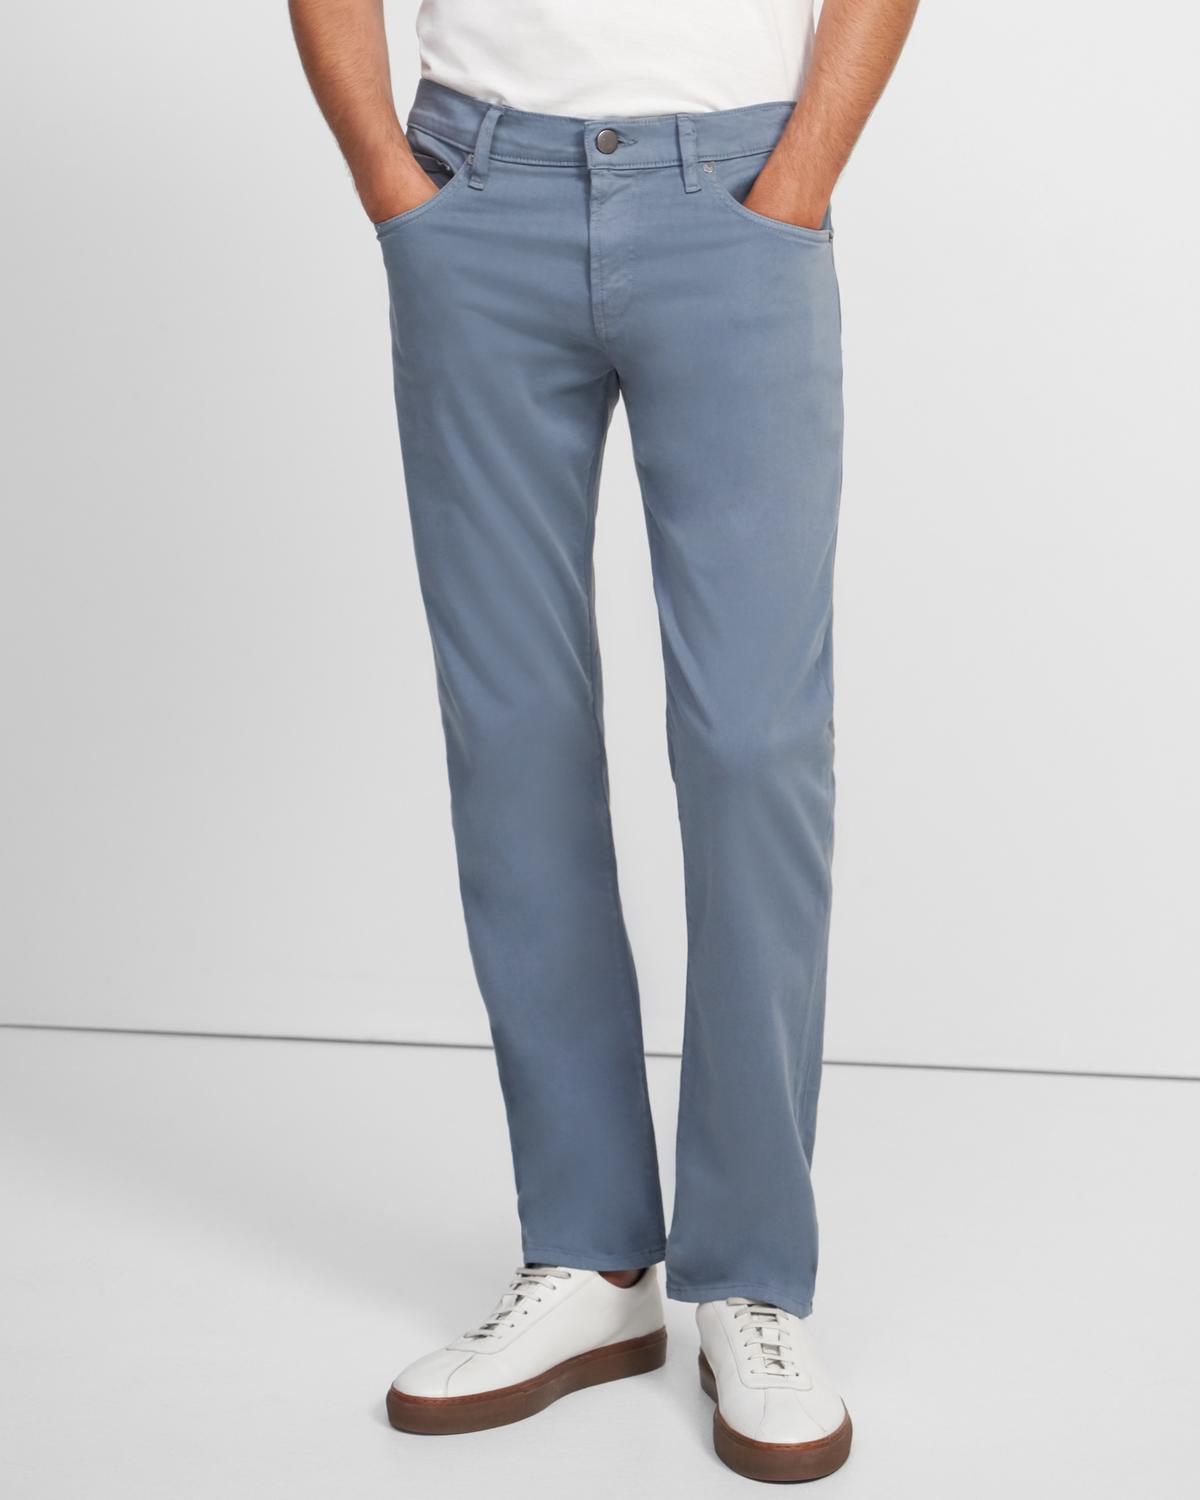 J Brand Kane Straight Fit Jean in Cotton Linen